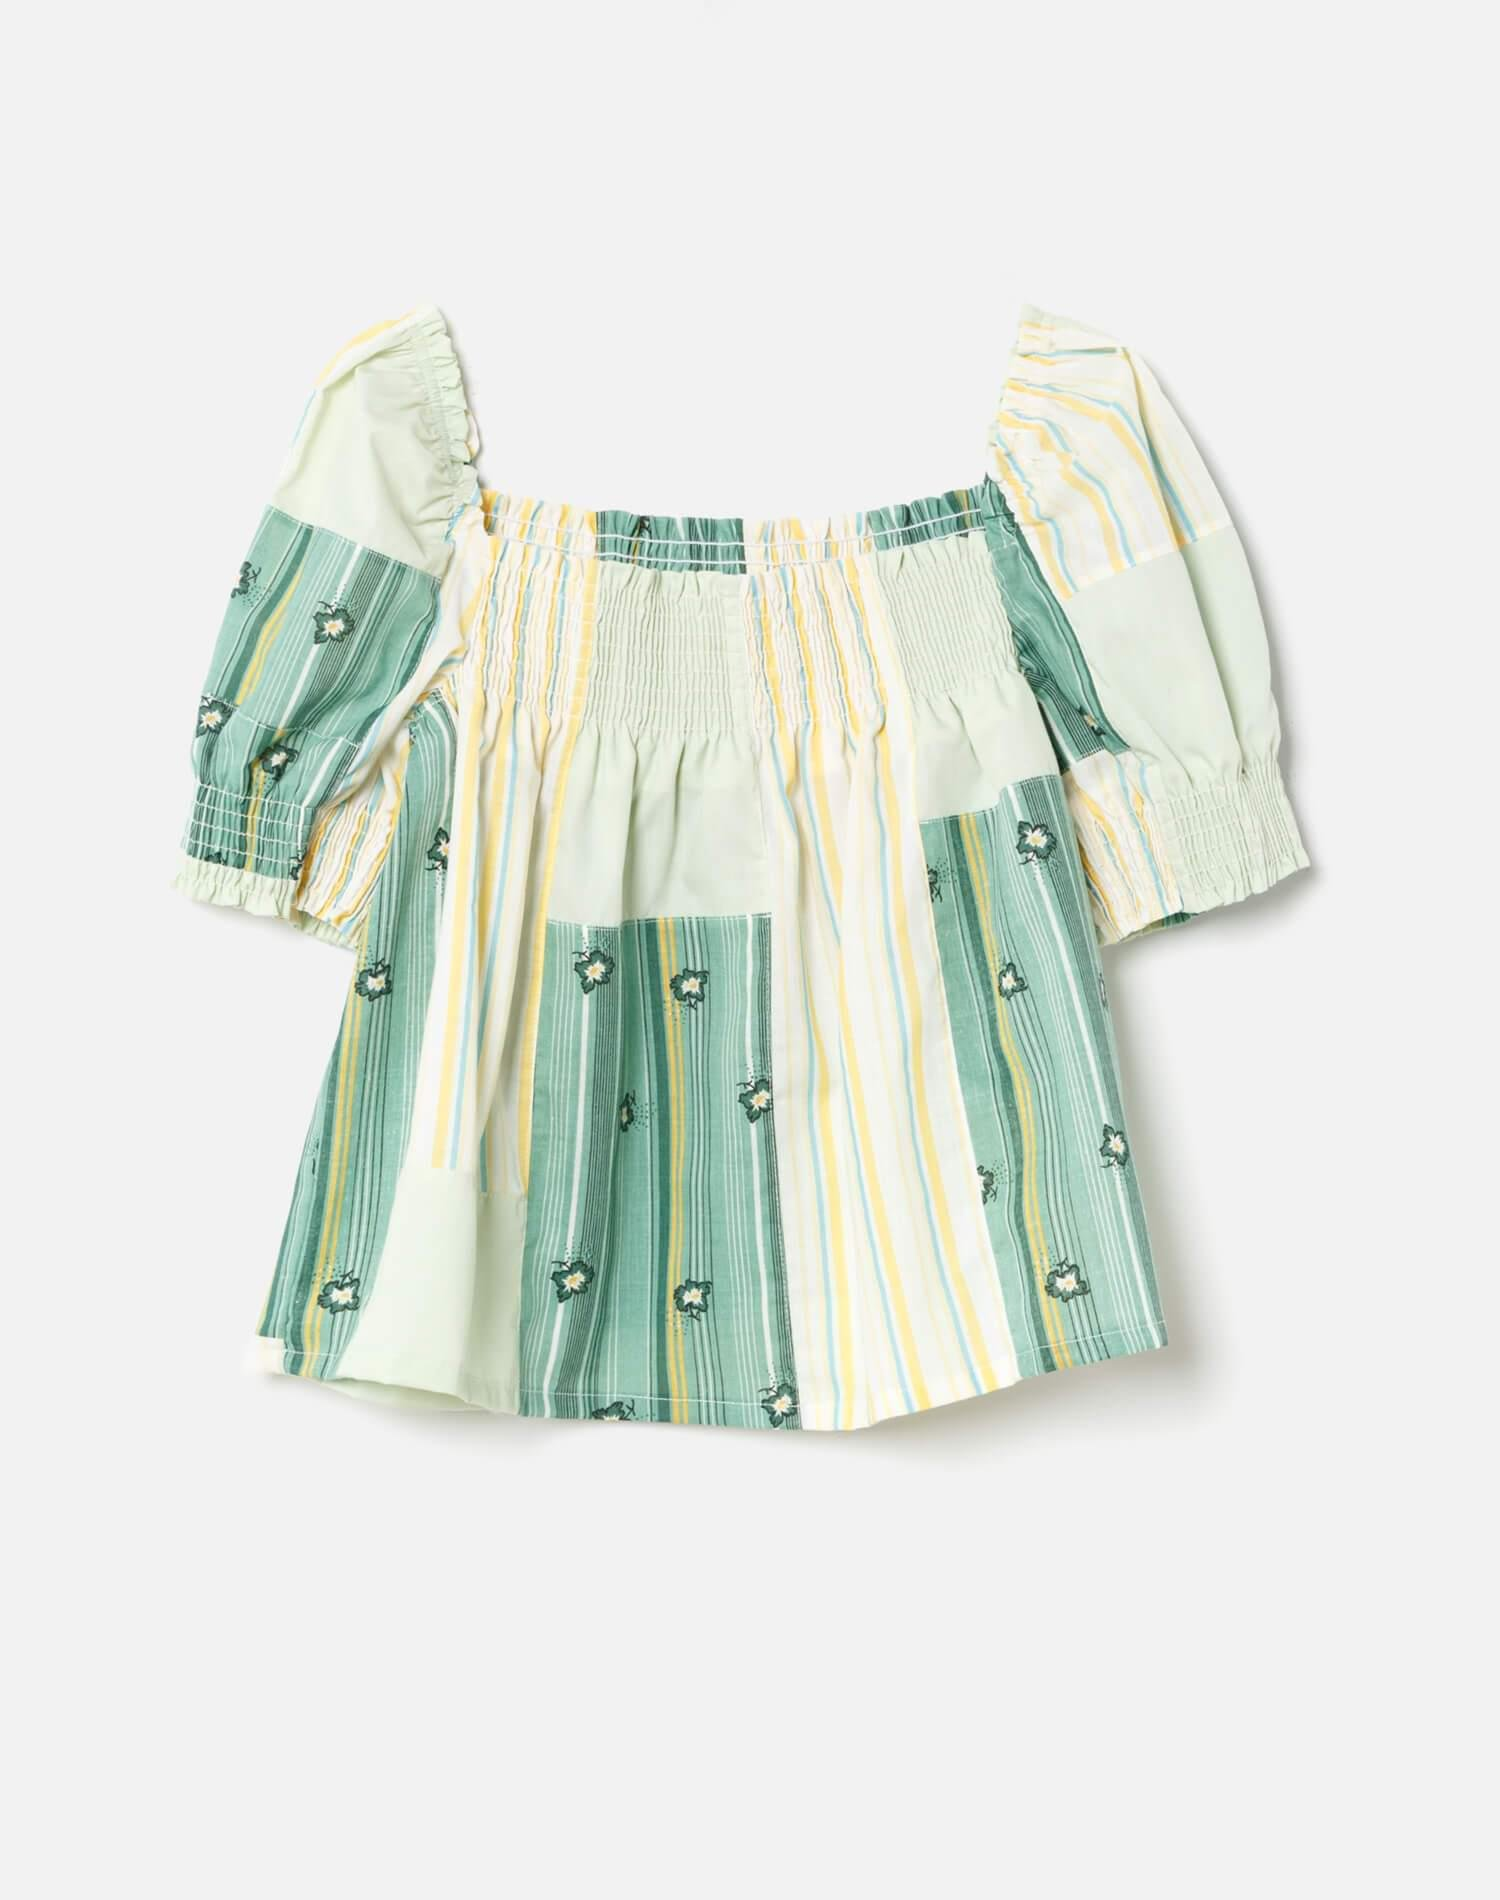 70s Upcycled Babydoll Top